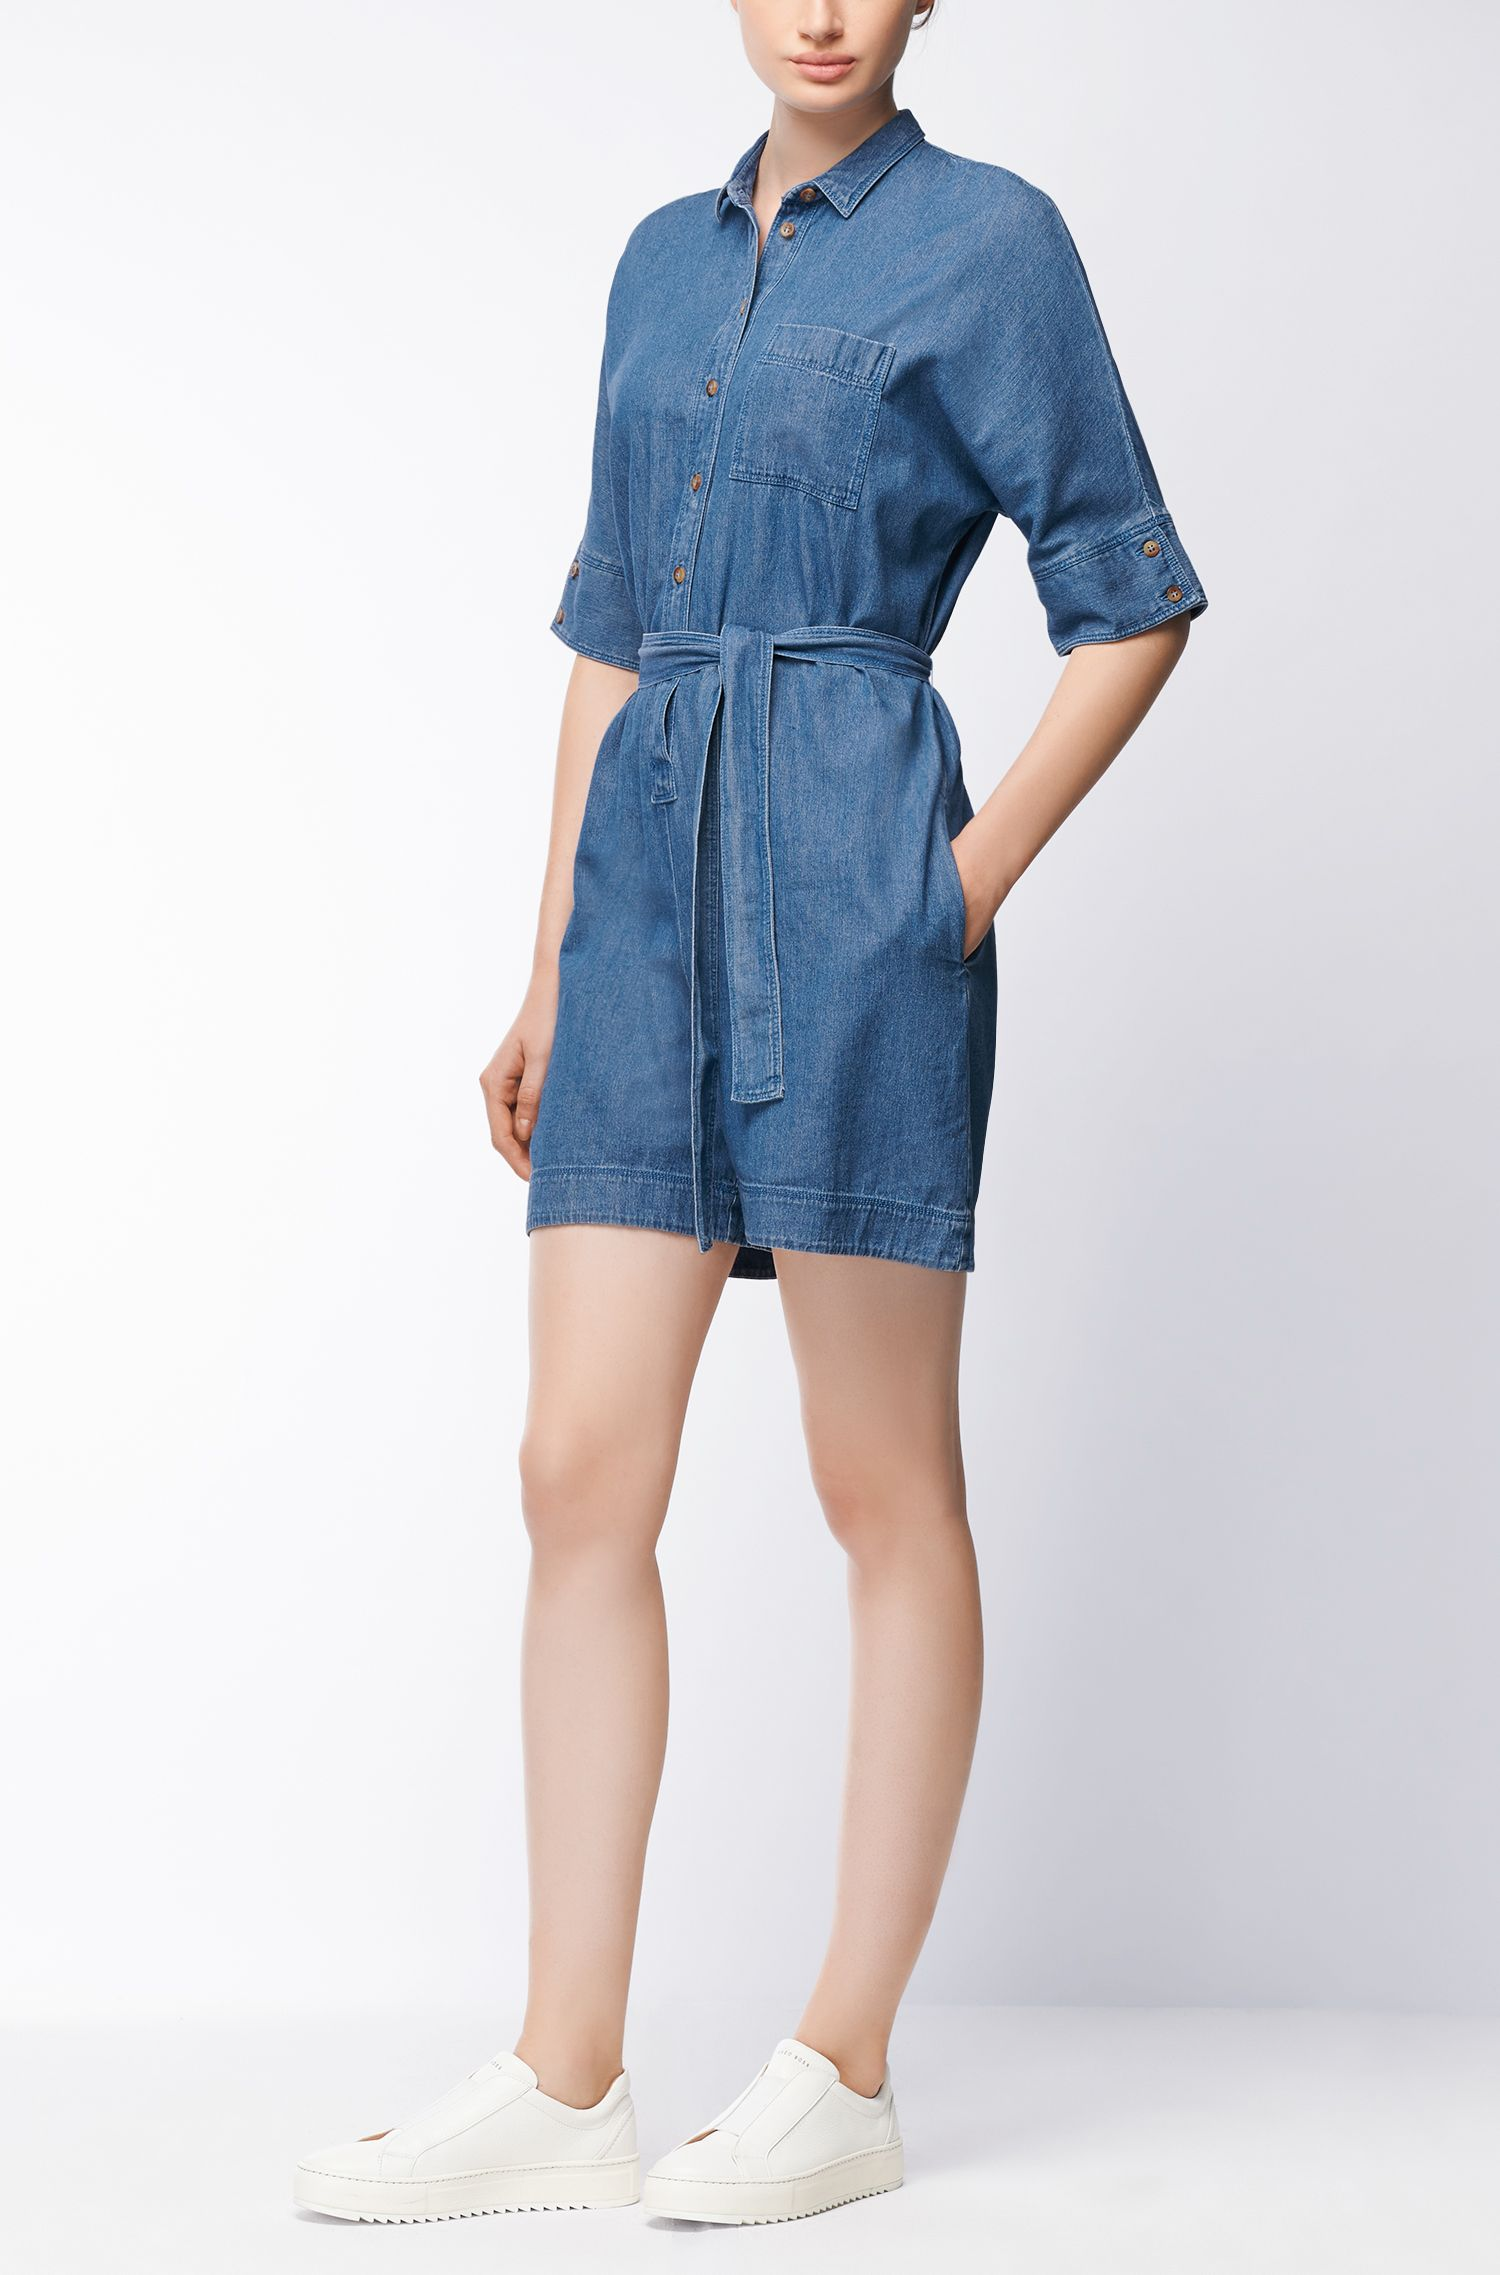 Denim playsuit with tie waist